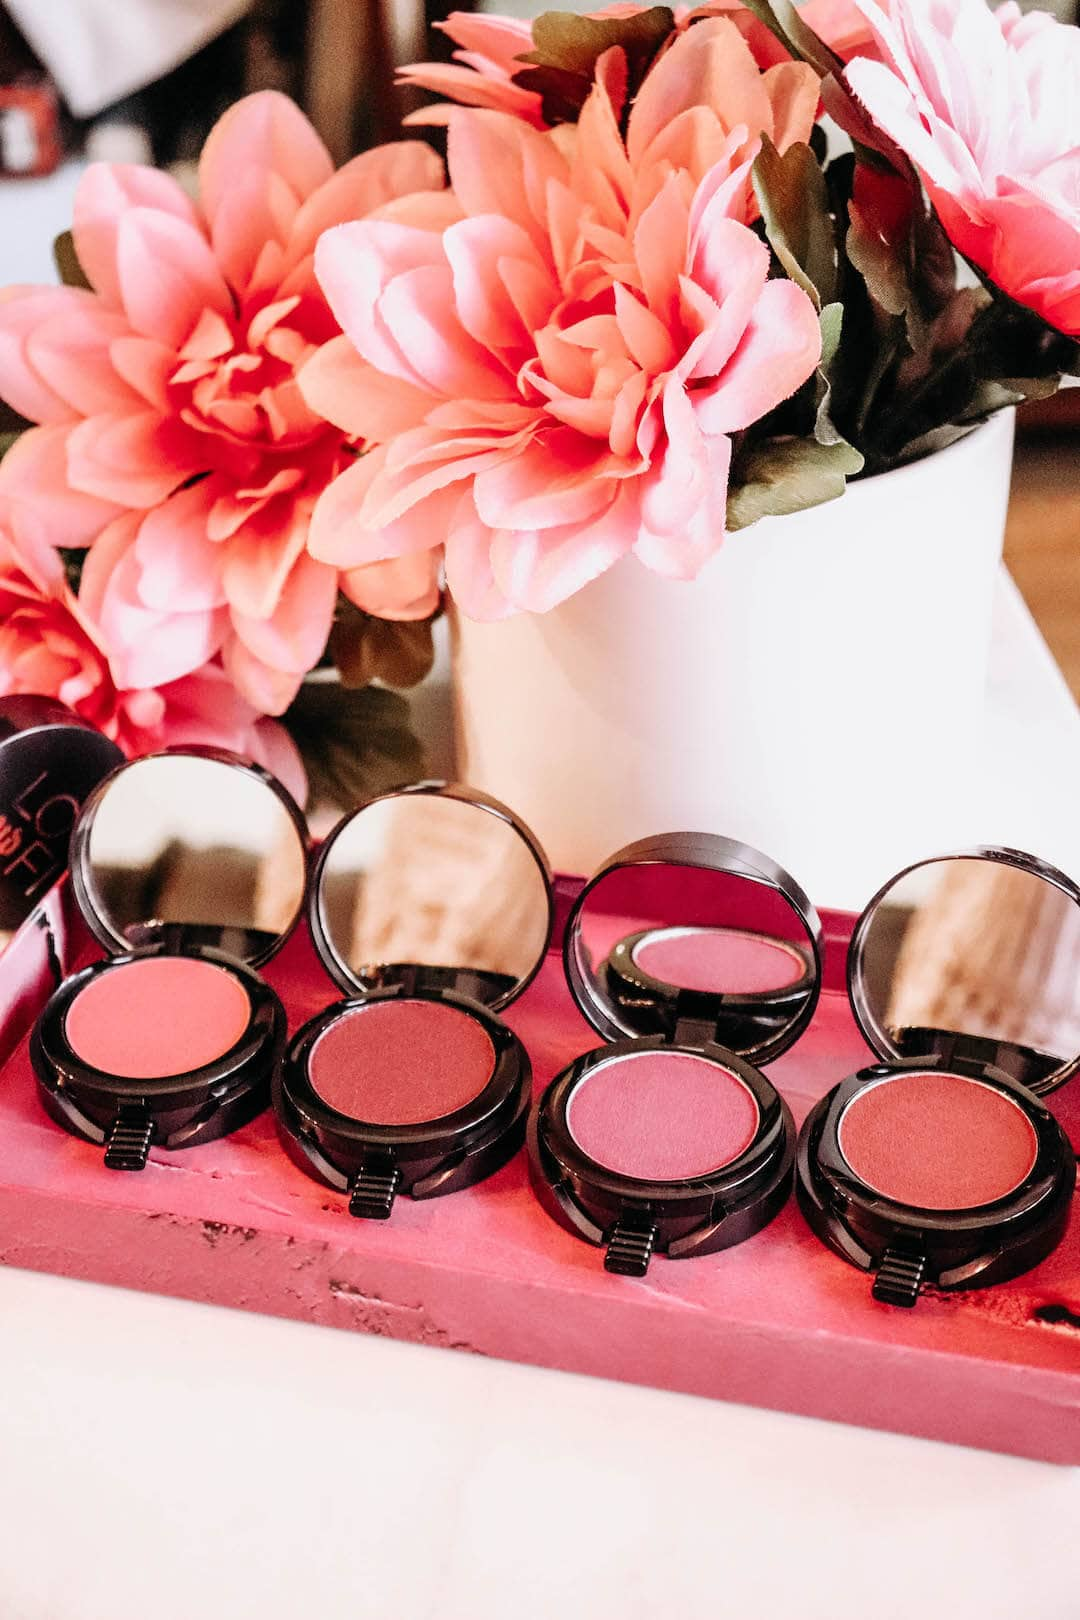 Not a Lipstick Fan? The Urban Decay Lo-Fi Lip Mousse Could be for You.